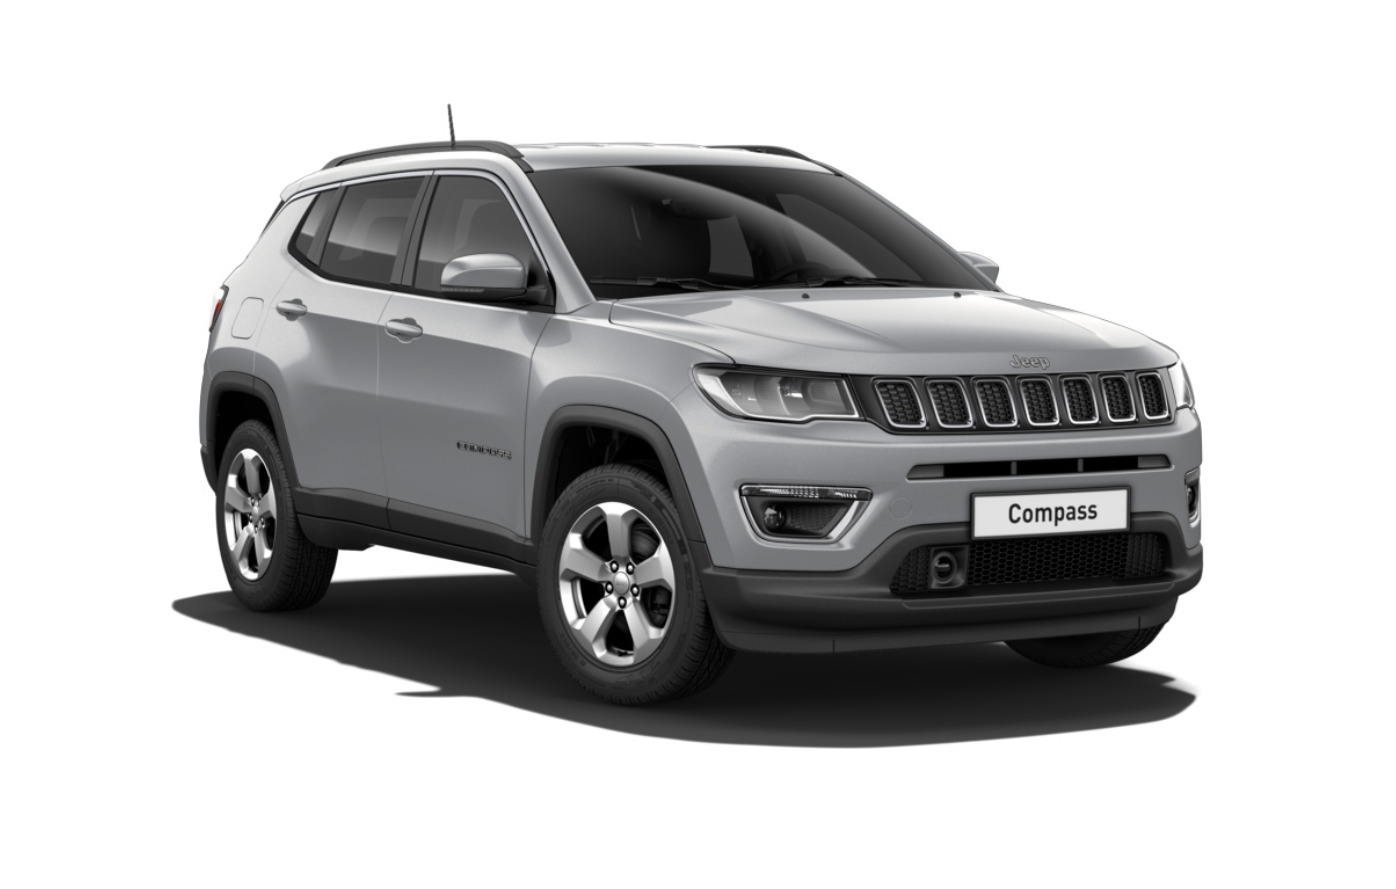 Jeep Compass 1.6 Multijet 120 Longitude 5dr [2WD]